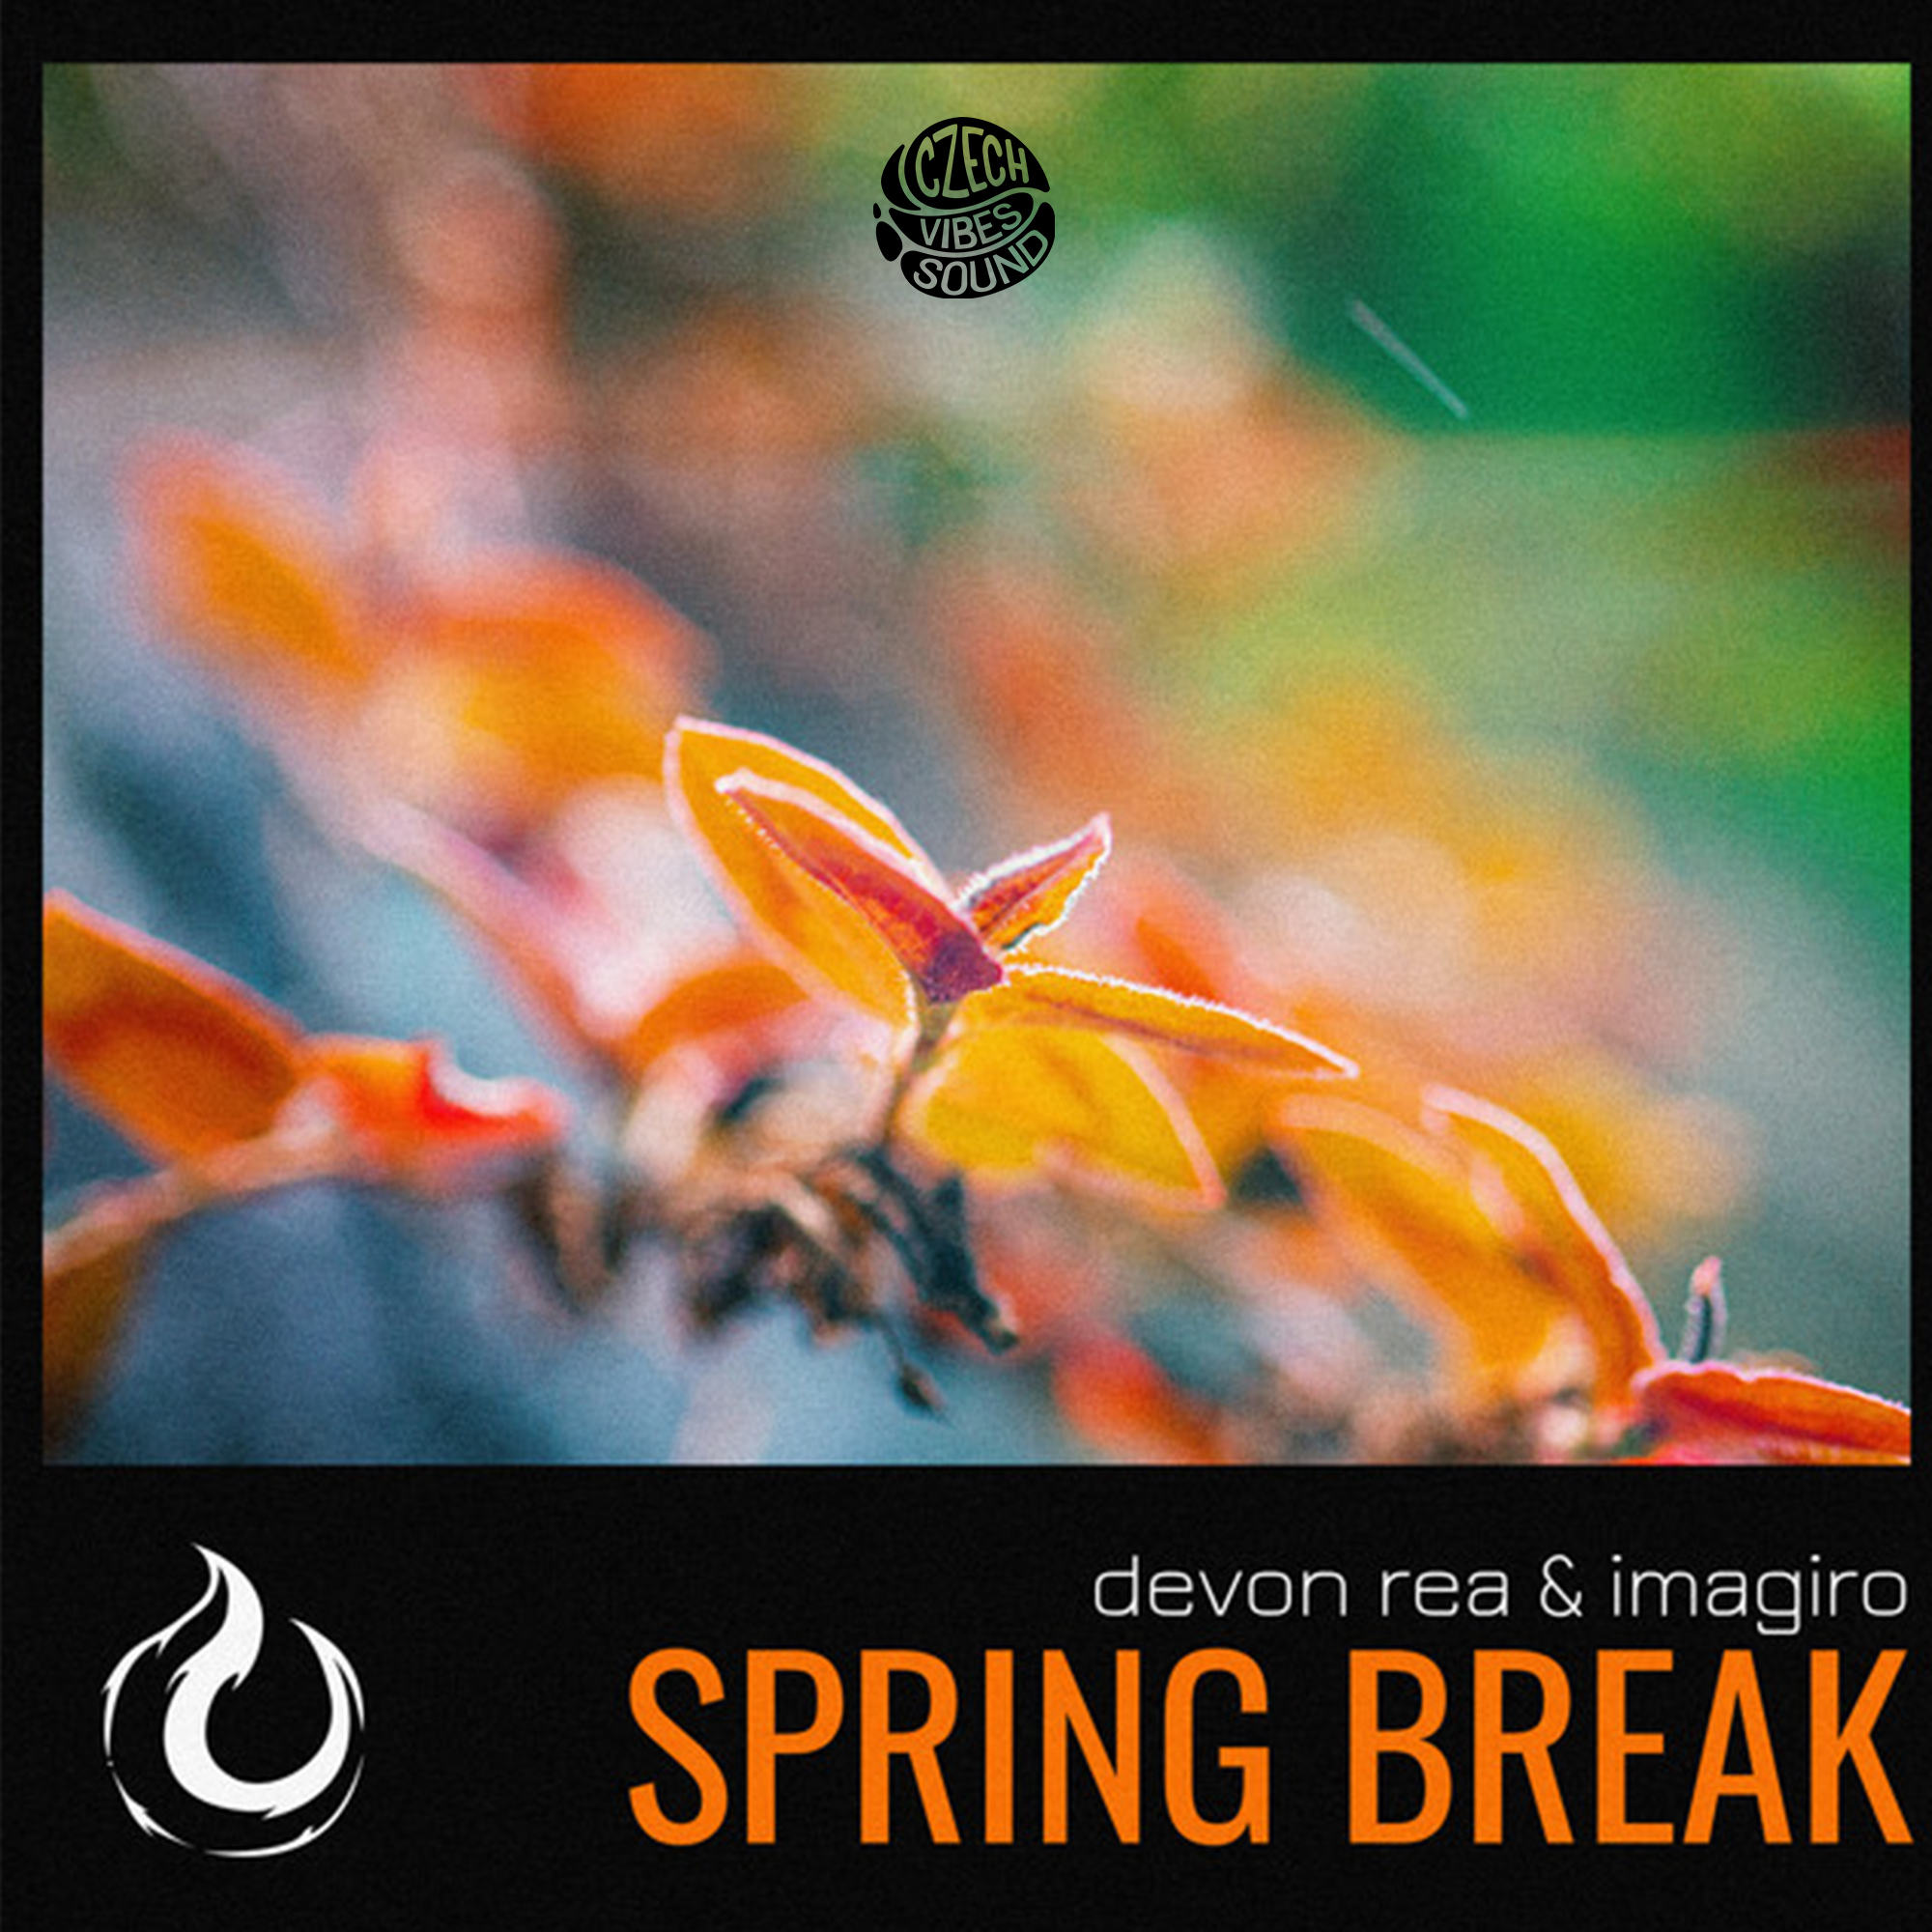 Devon Rea x Imagiro - Spring Break